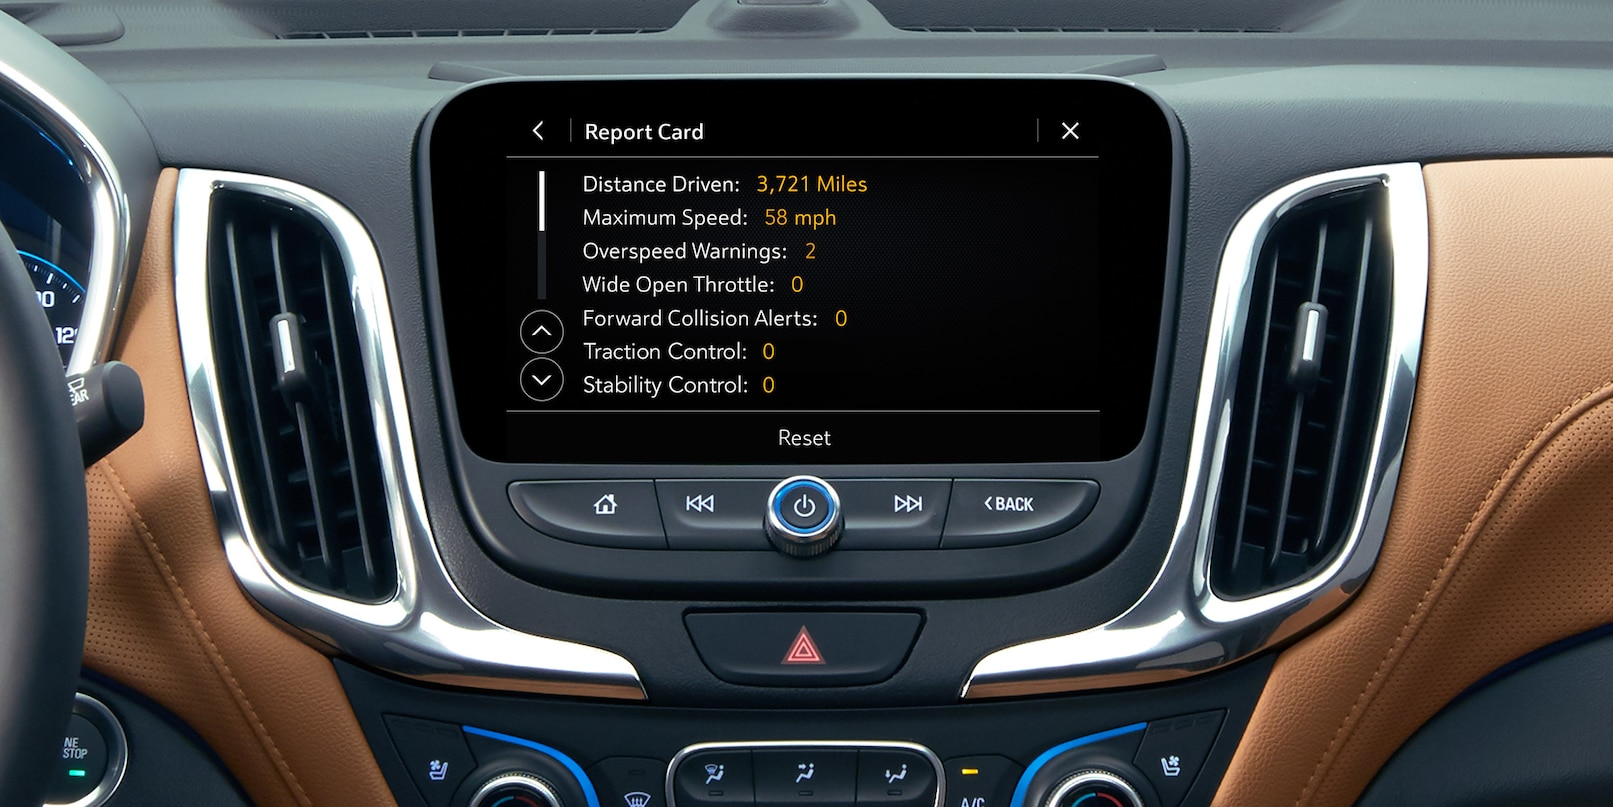 Touchscreen Display in the 2019 Equinox